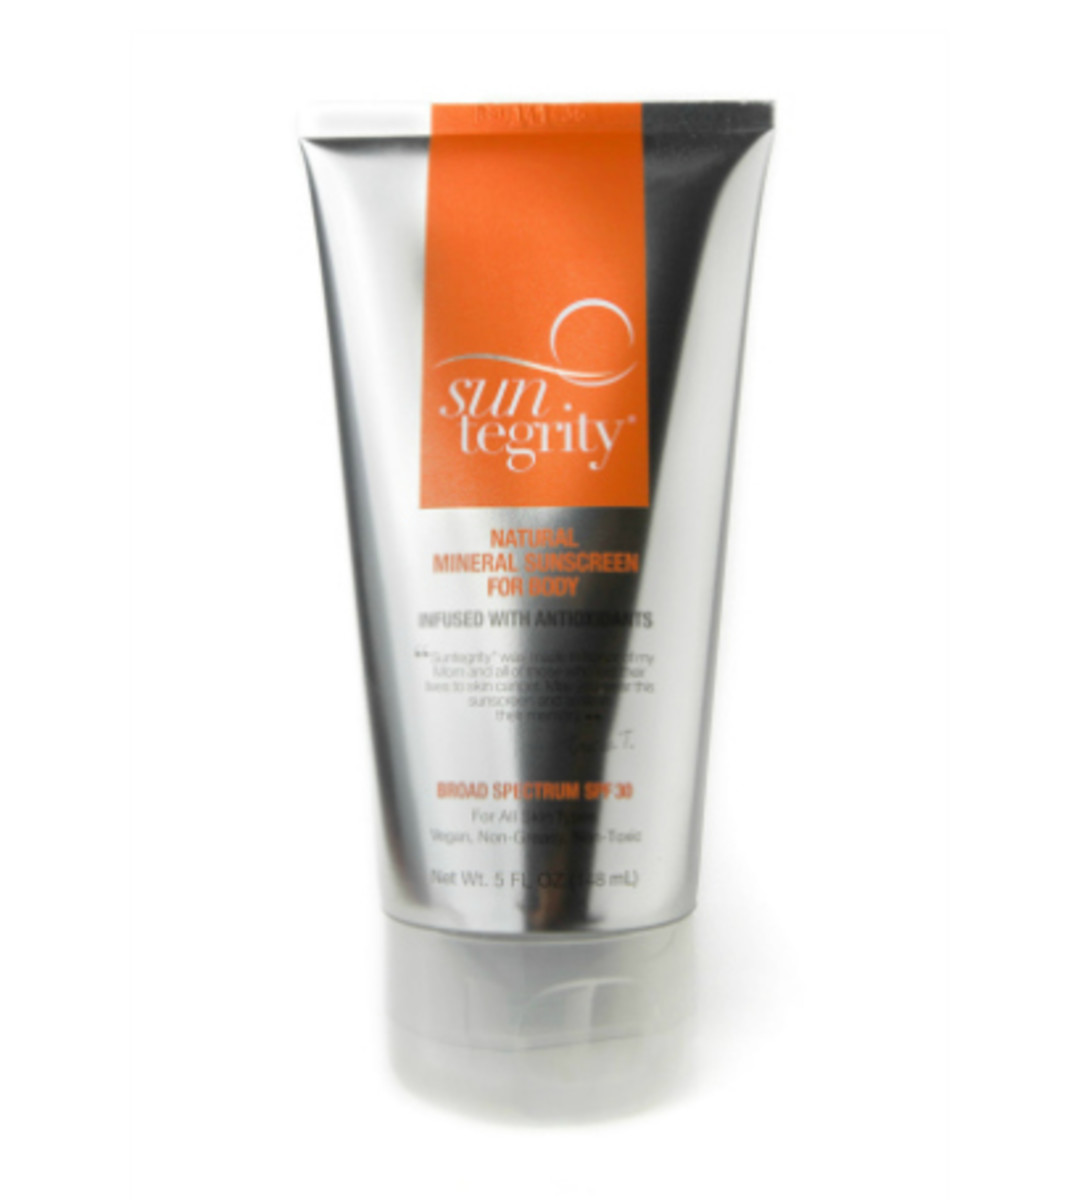 Natural Sunscreen Suntegrity Body 30